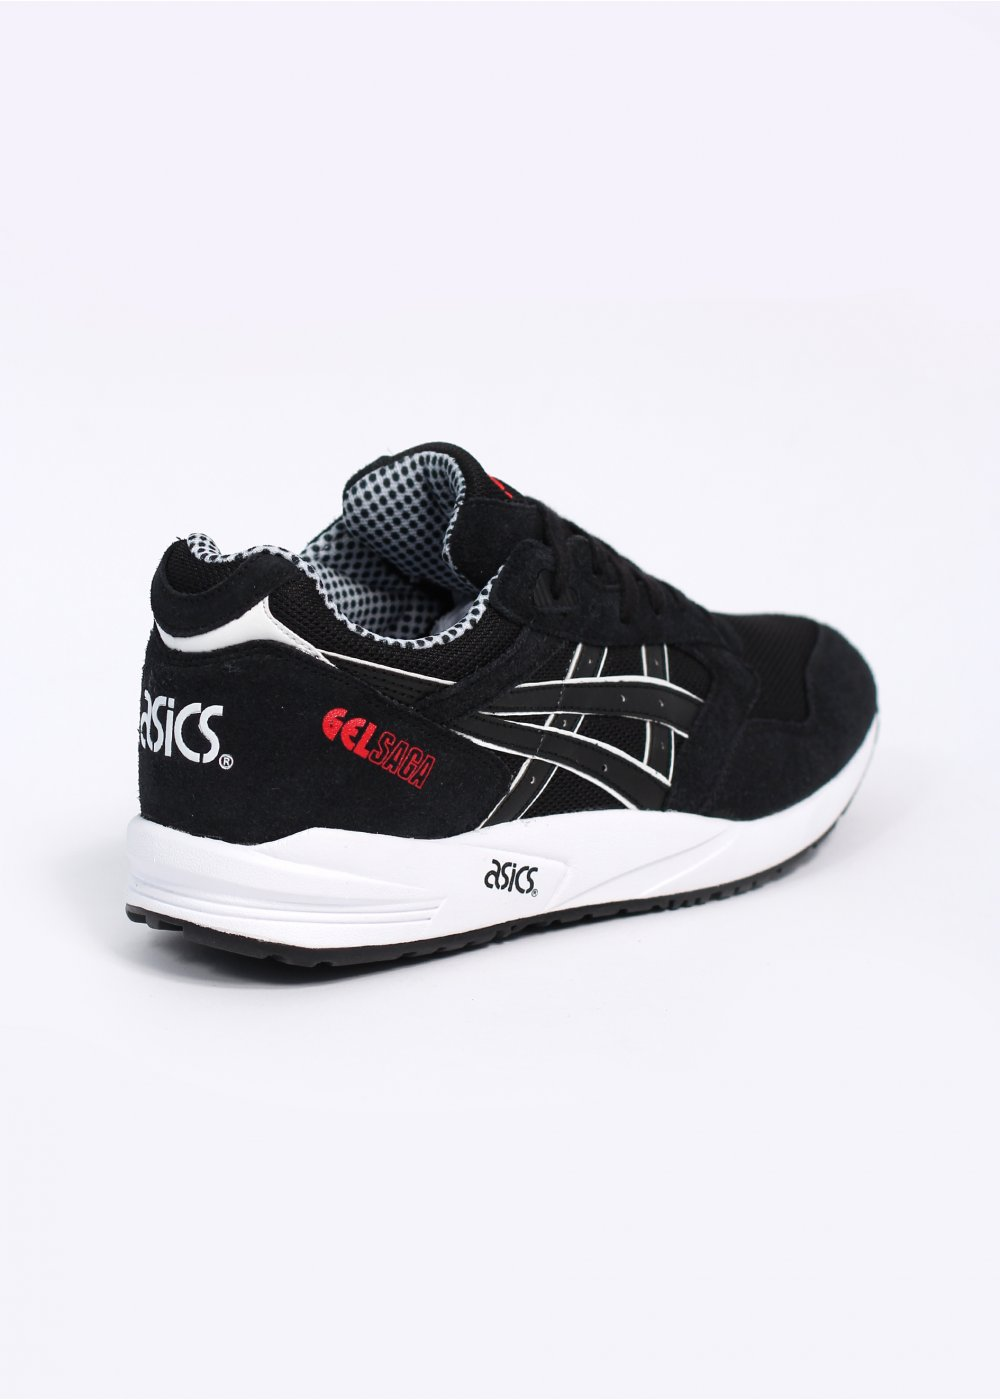 asics gel saga trainers black